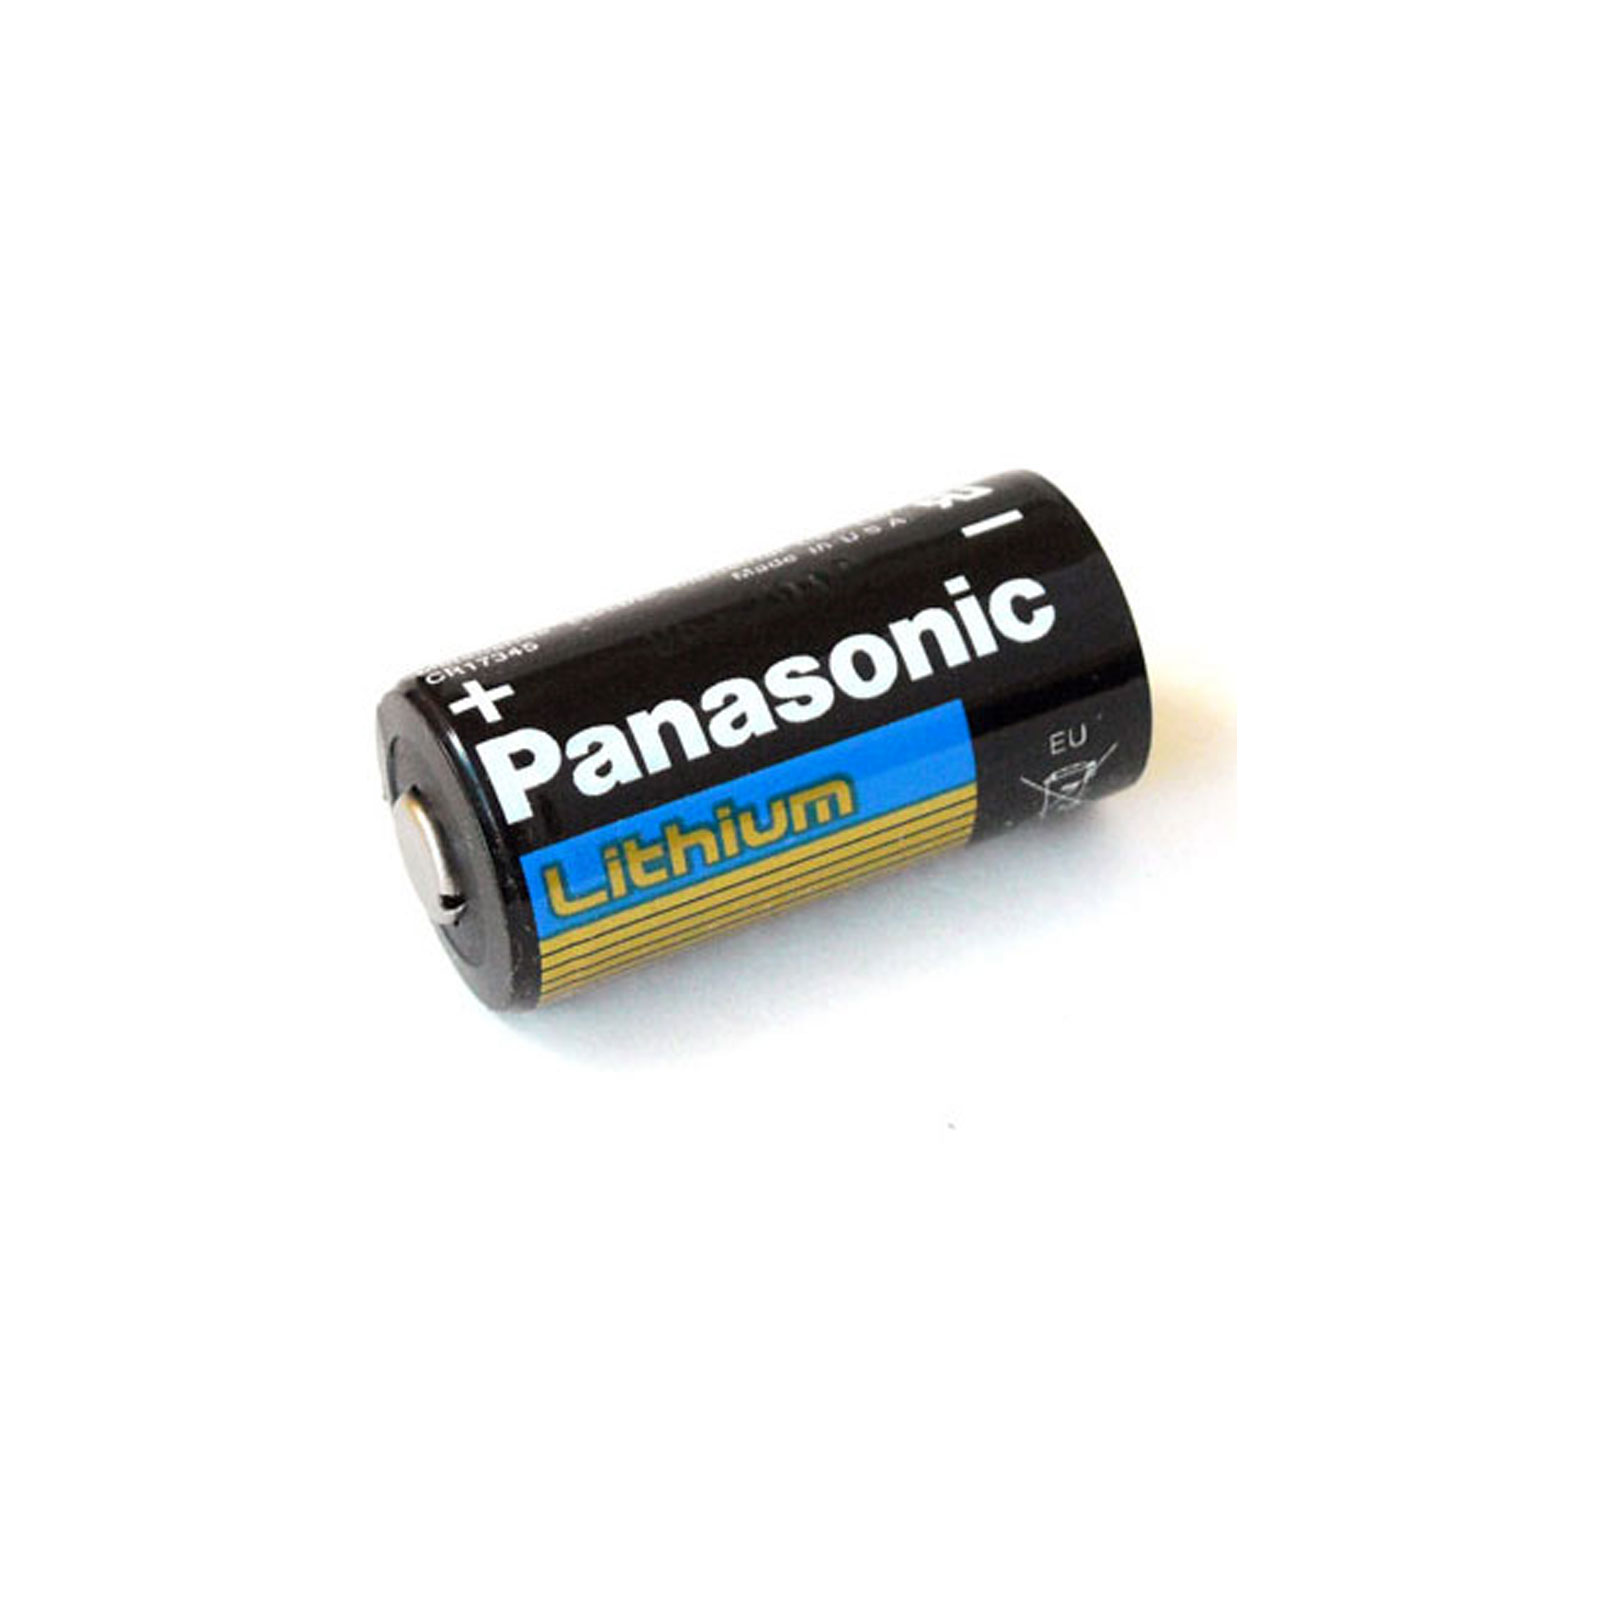 panasonic lithium cr123a 3v battery replaces el123 ebay. Black Bedroom Furniture Sets. Home Design Ideas